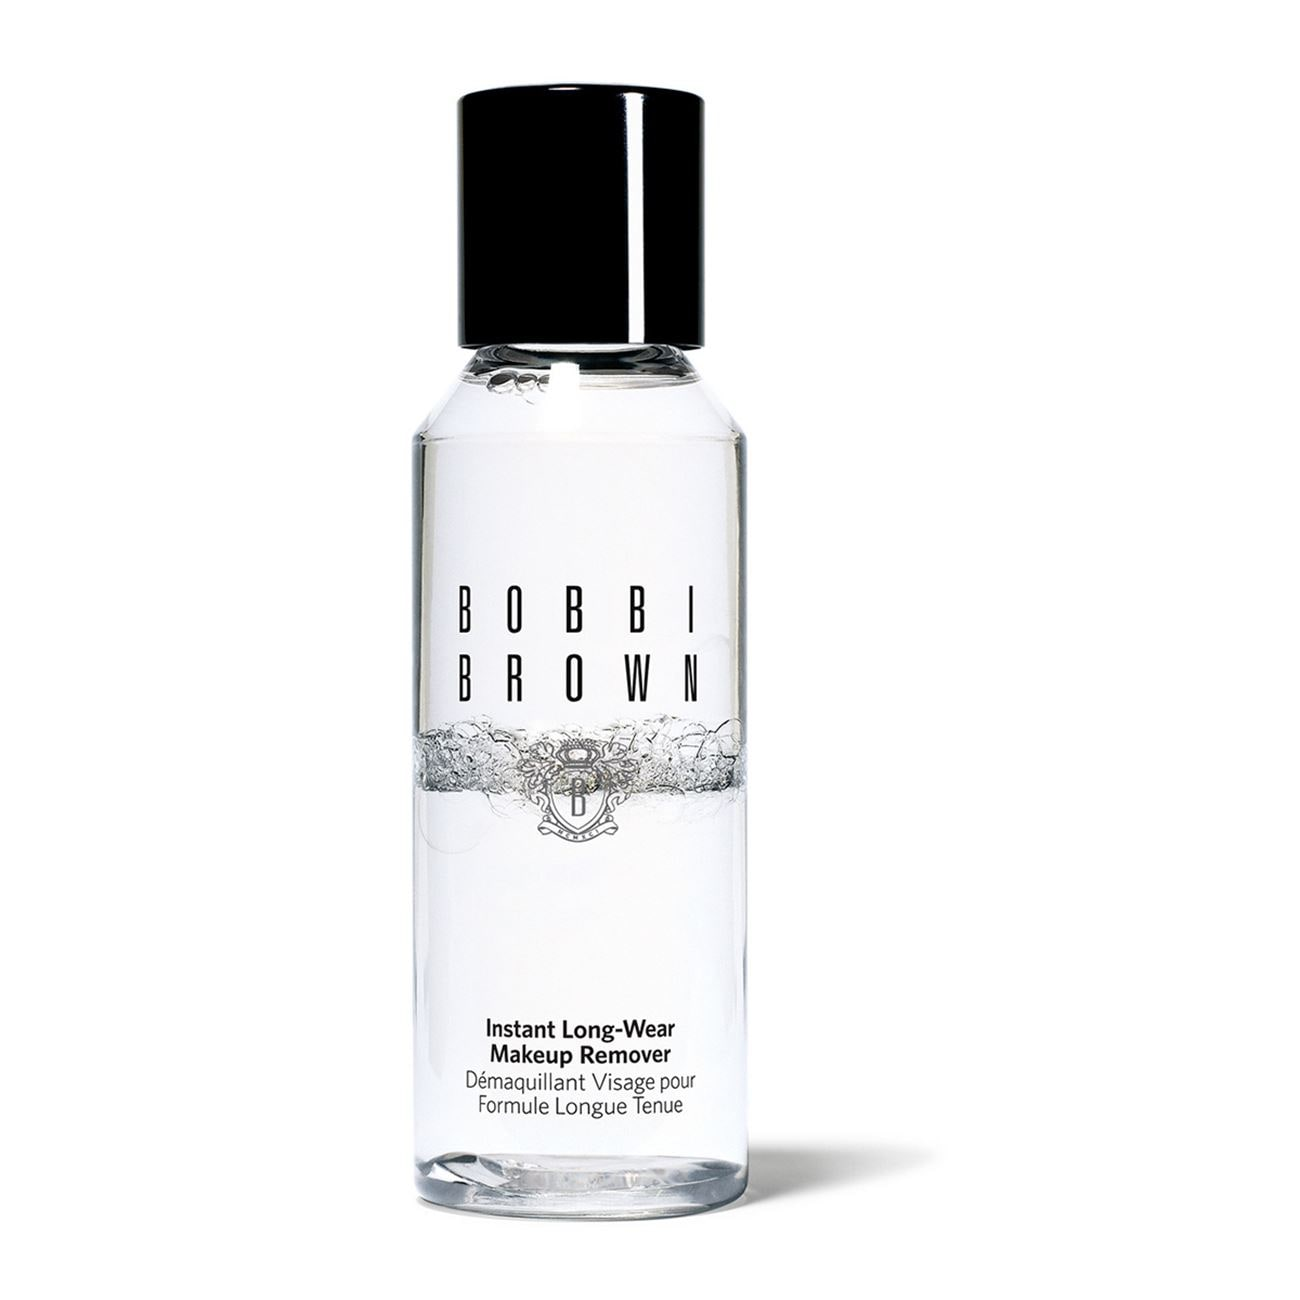 Instant Long Wear Makeup Remover